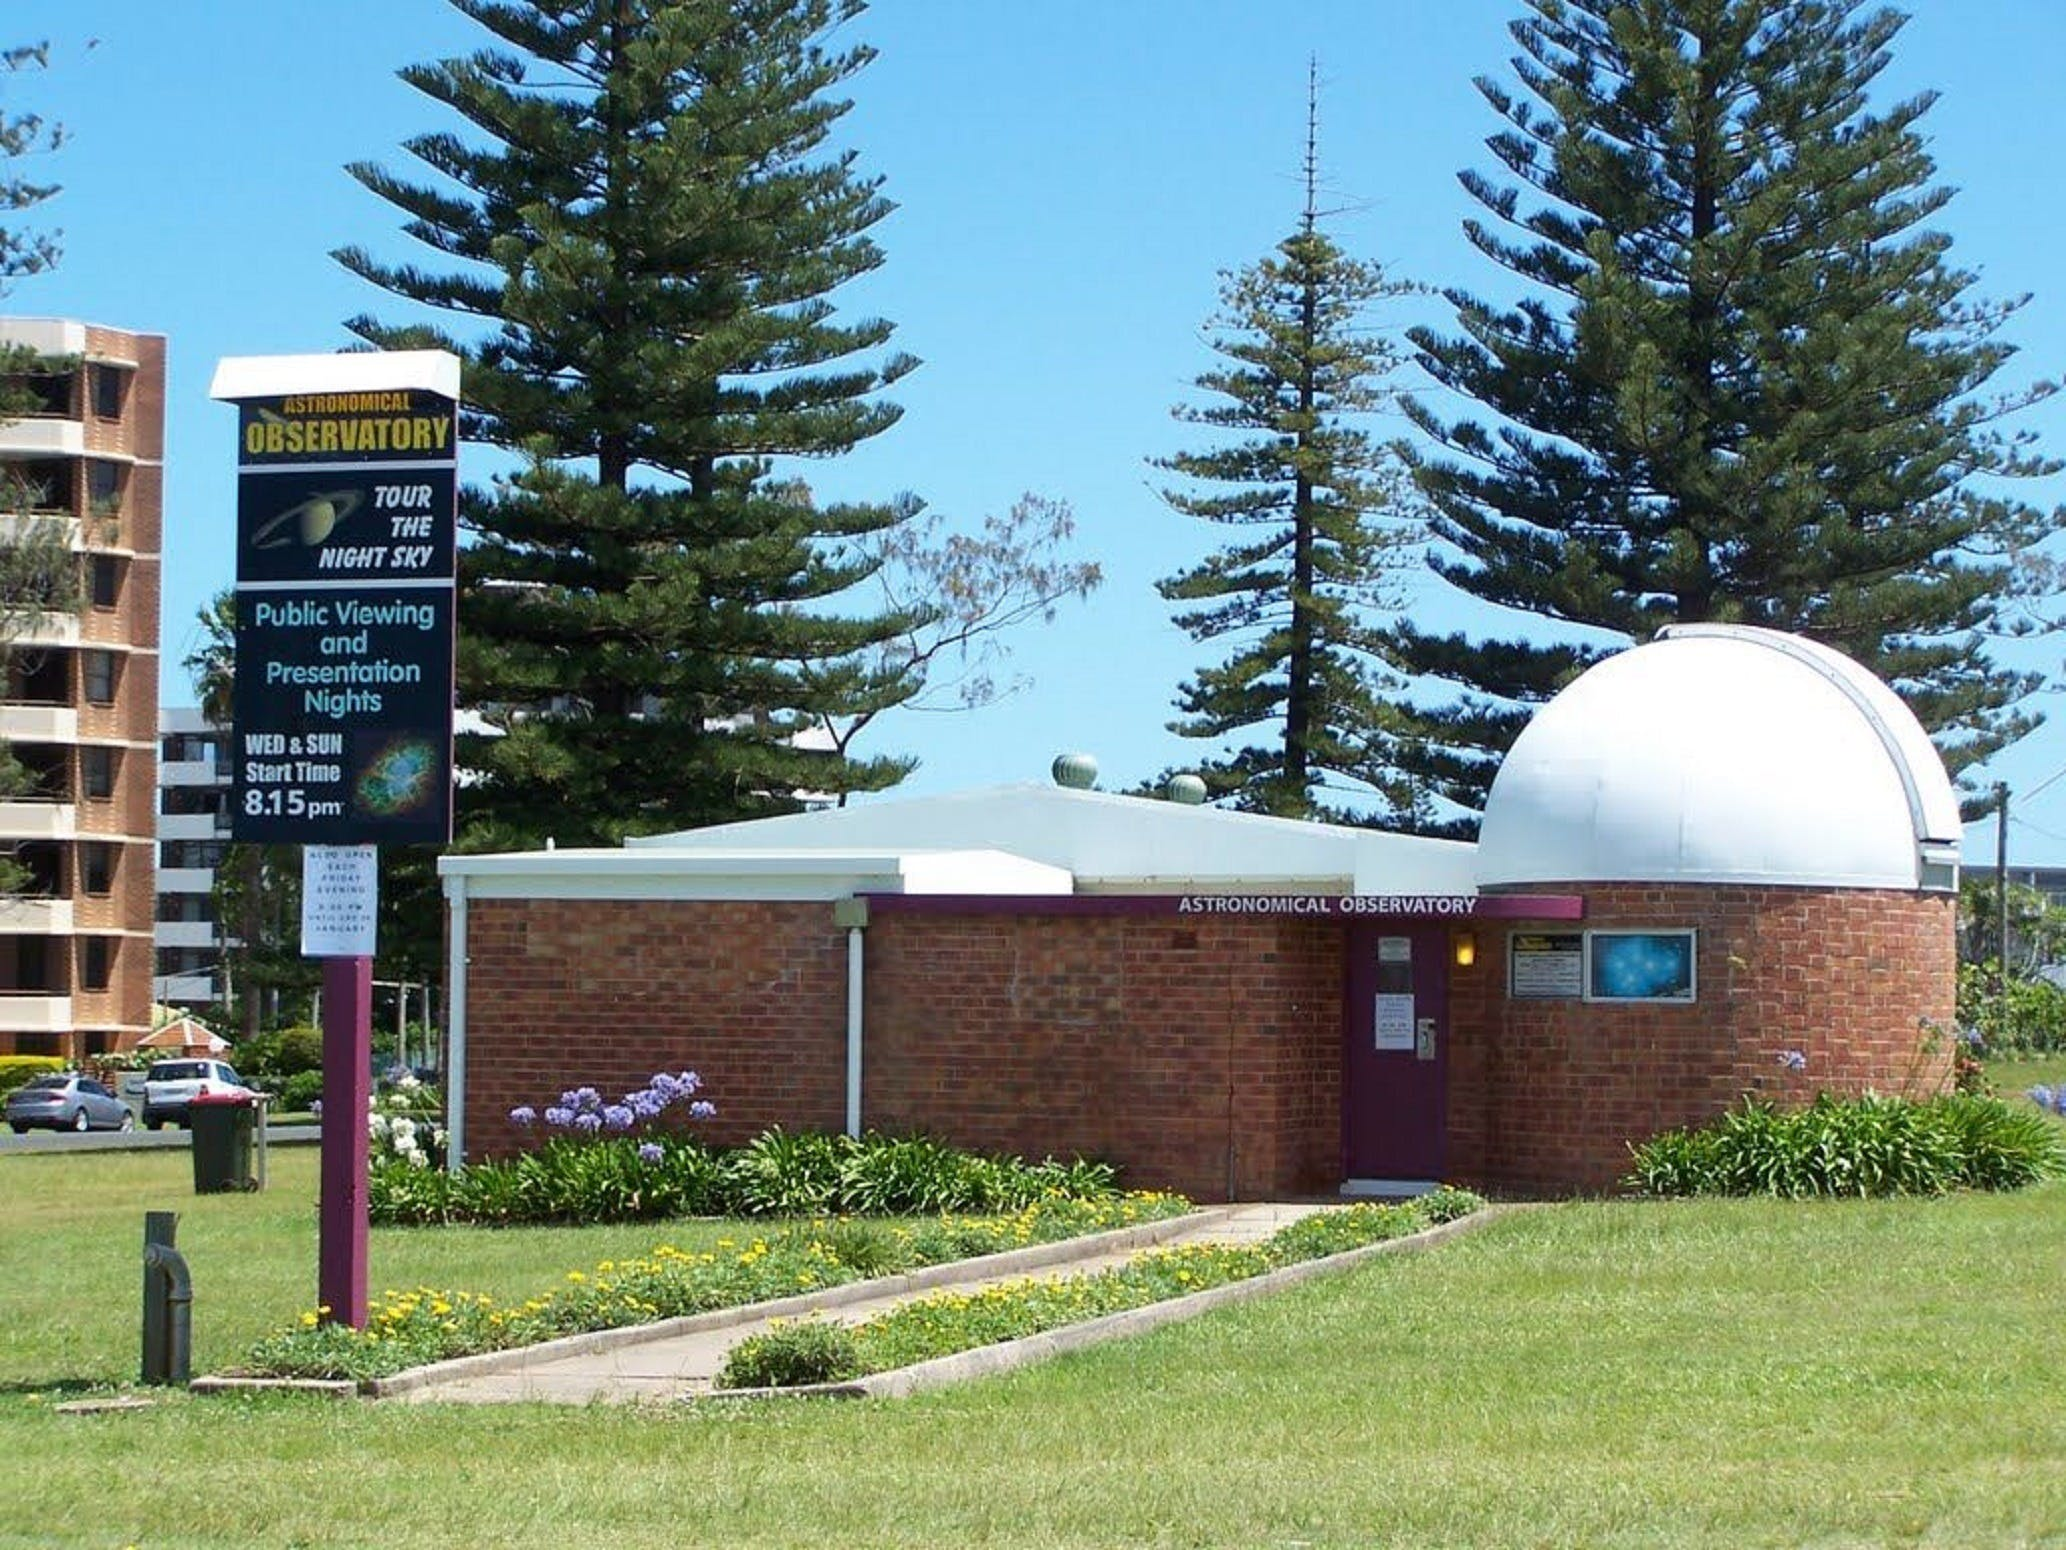 Port Macquarie Astronomical Observatory - Kingaroy Accommodation